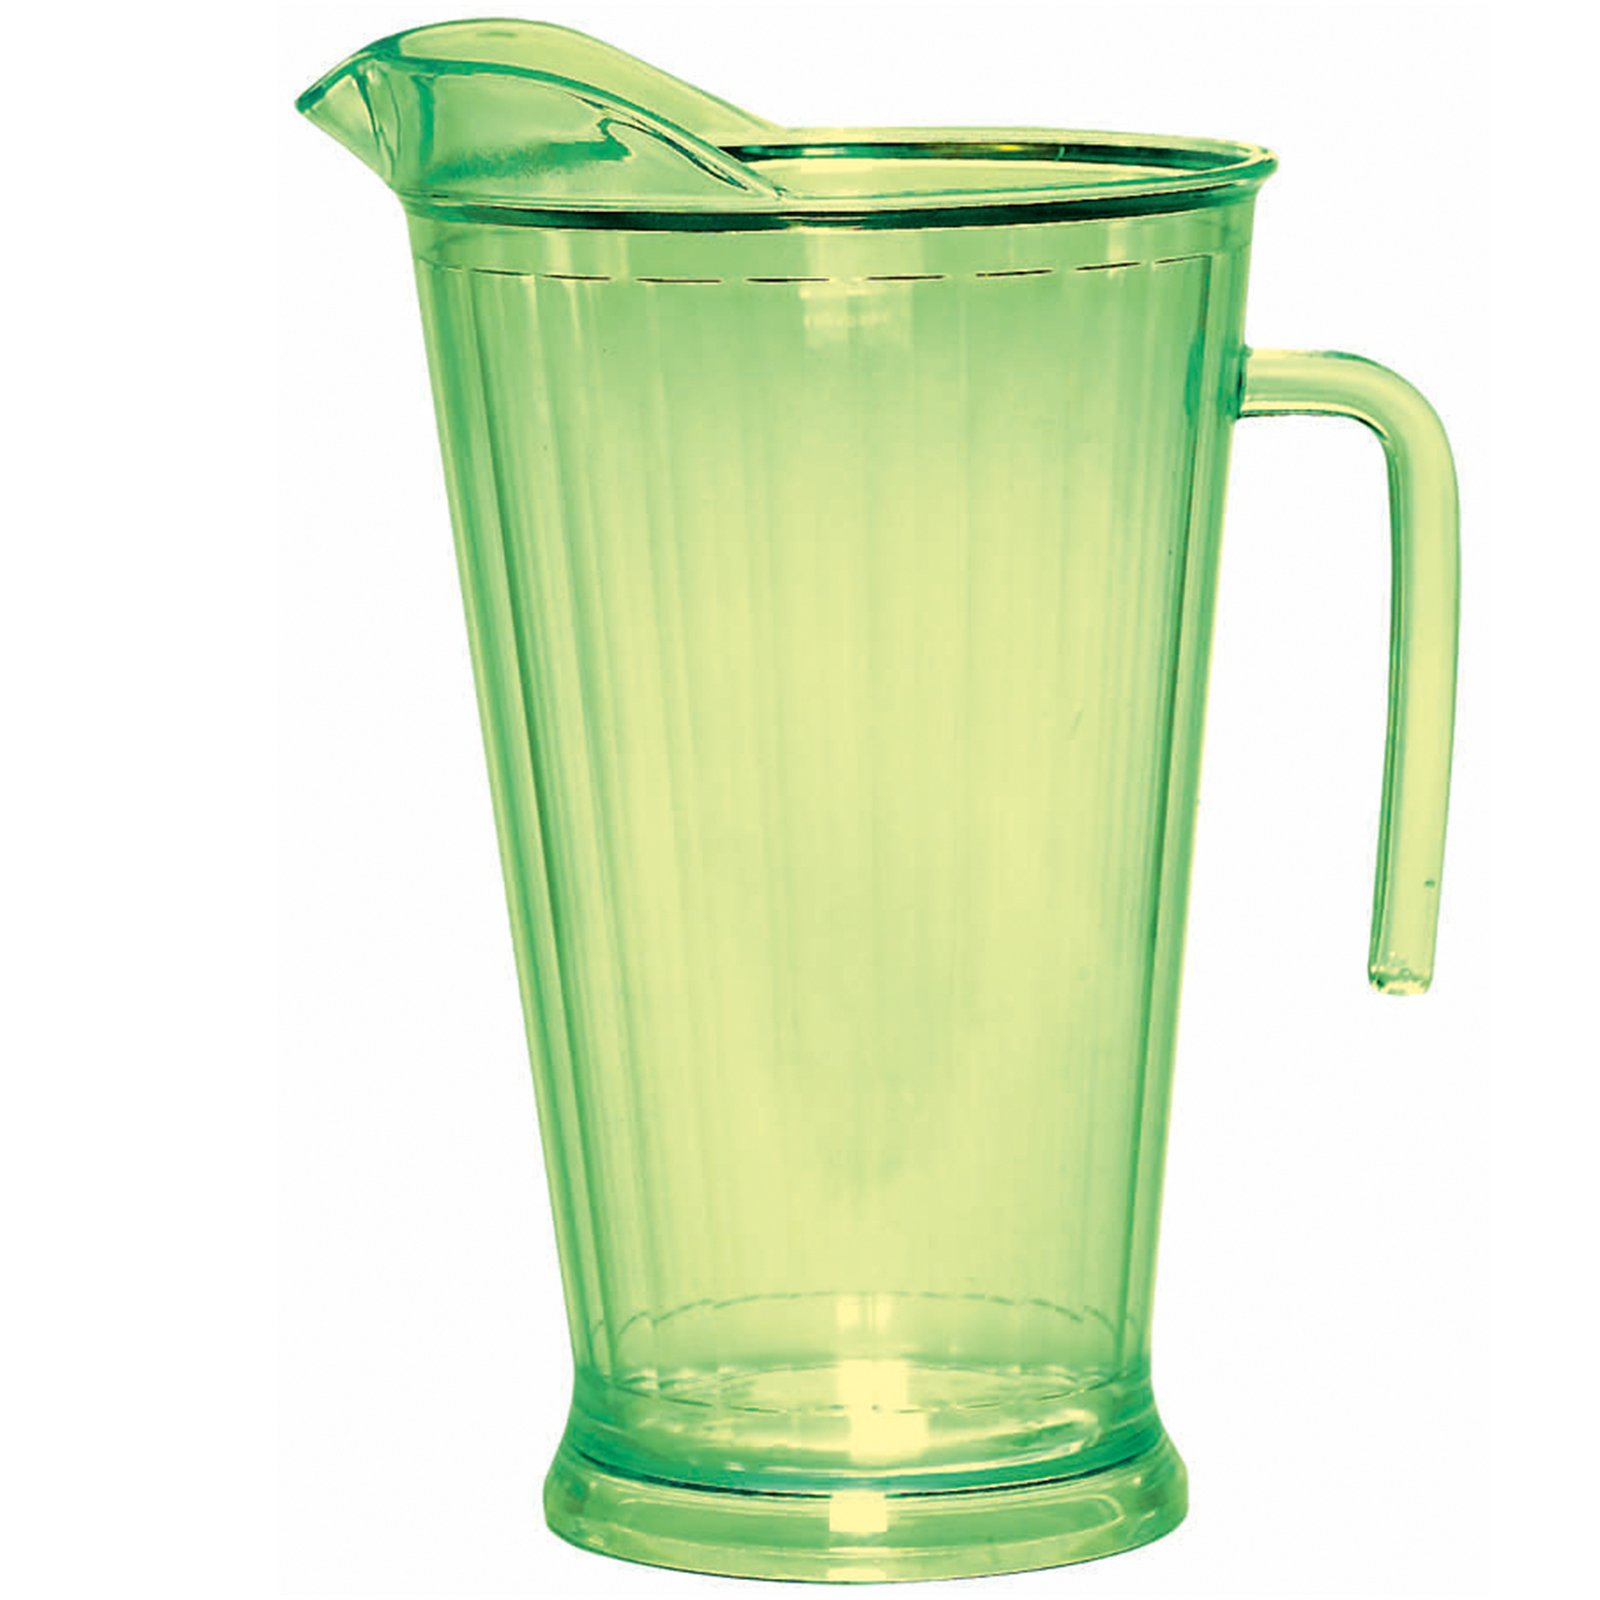 Lemon Lime 64 oz. Plastic Pitcher